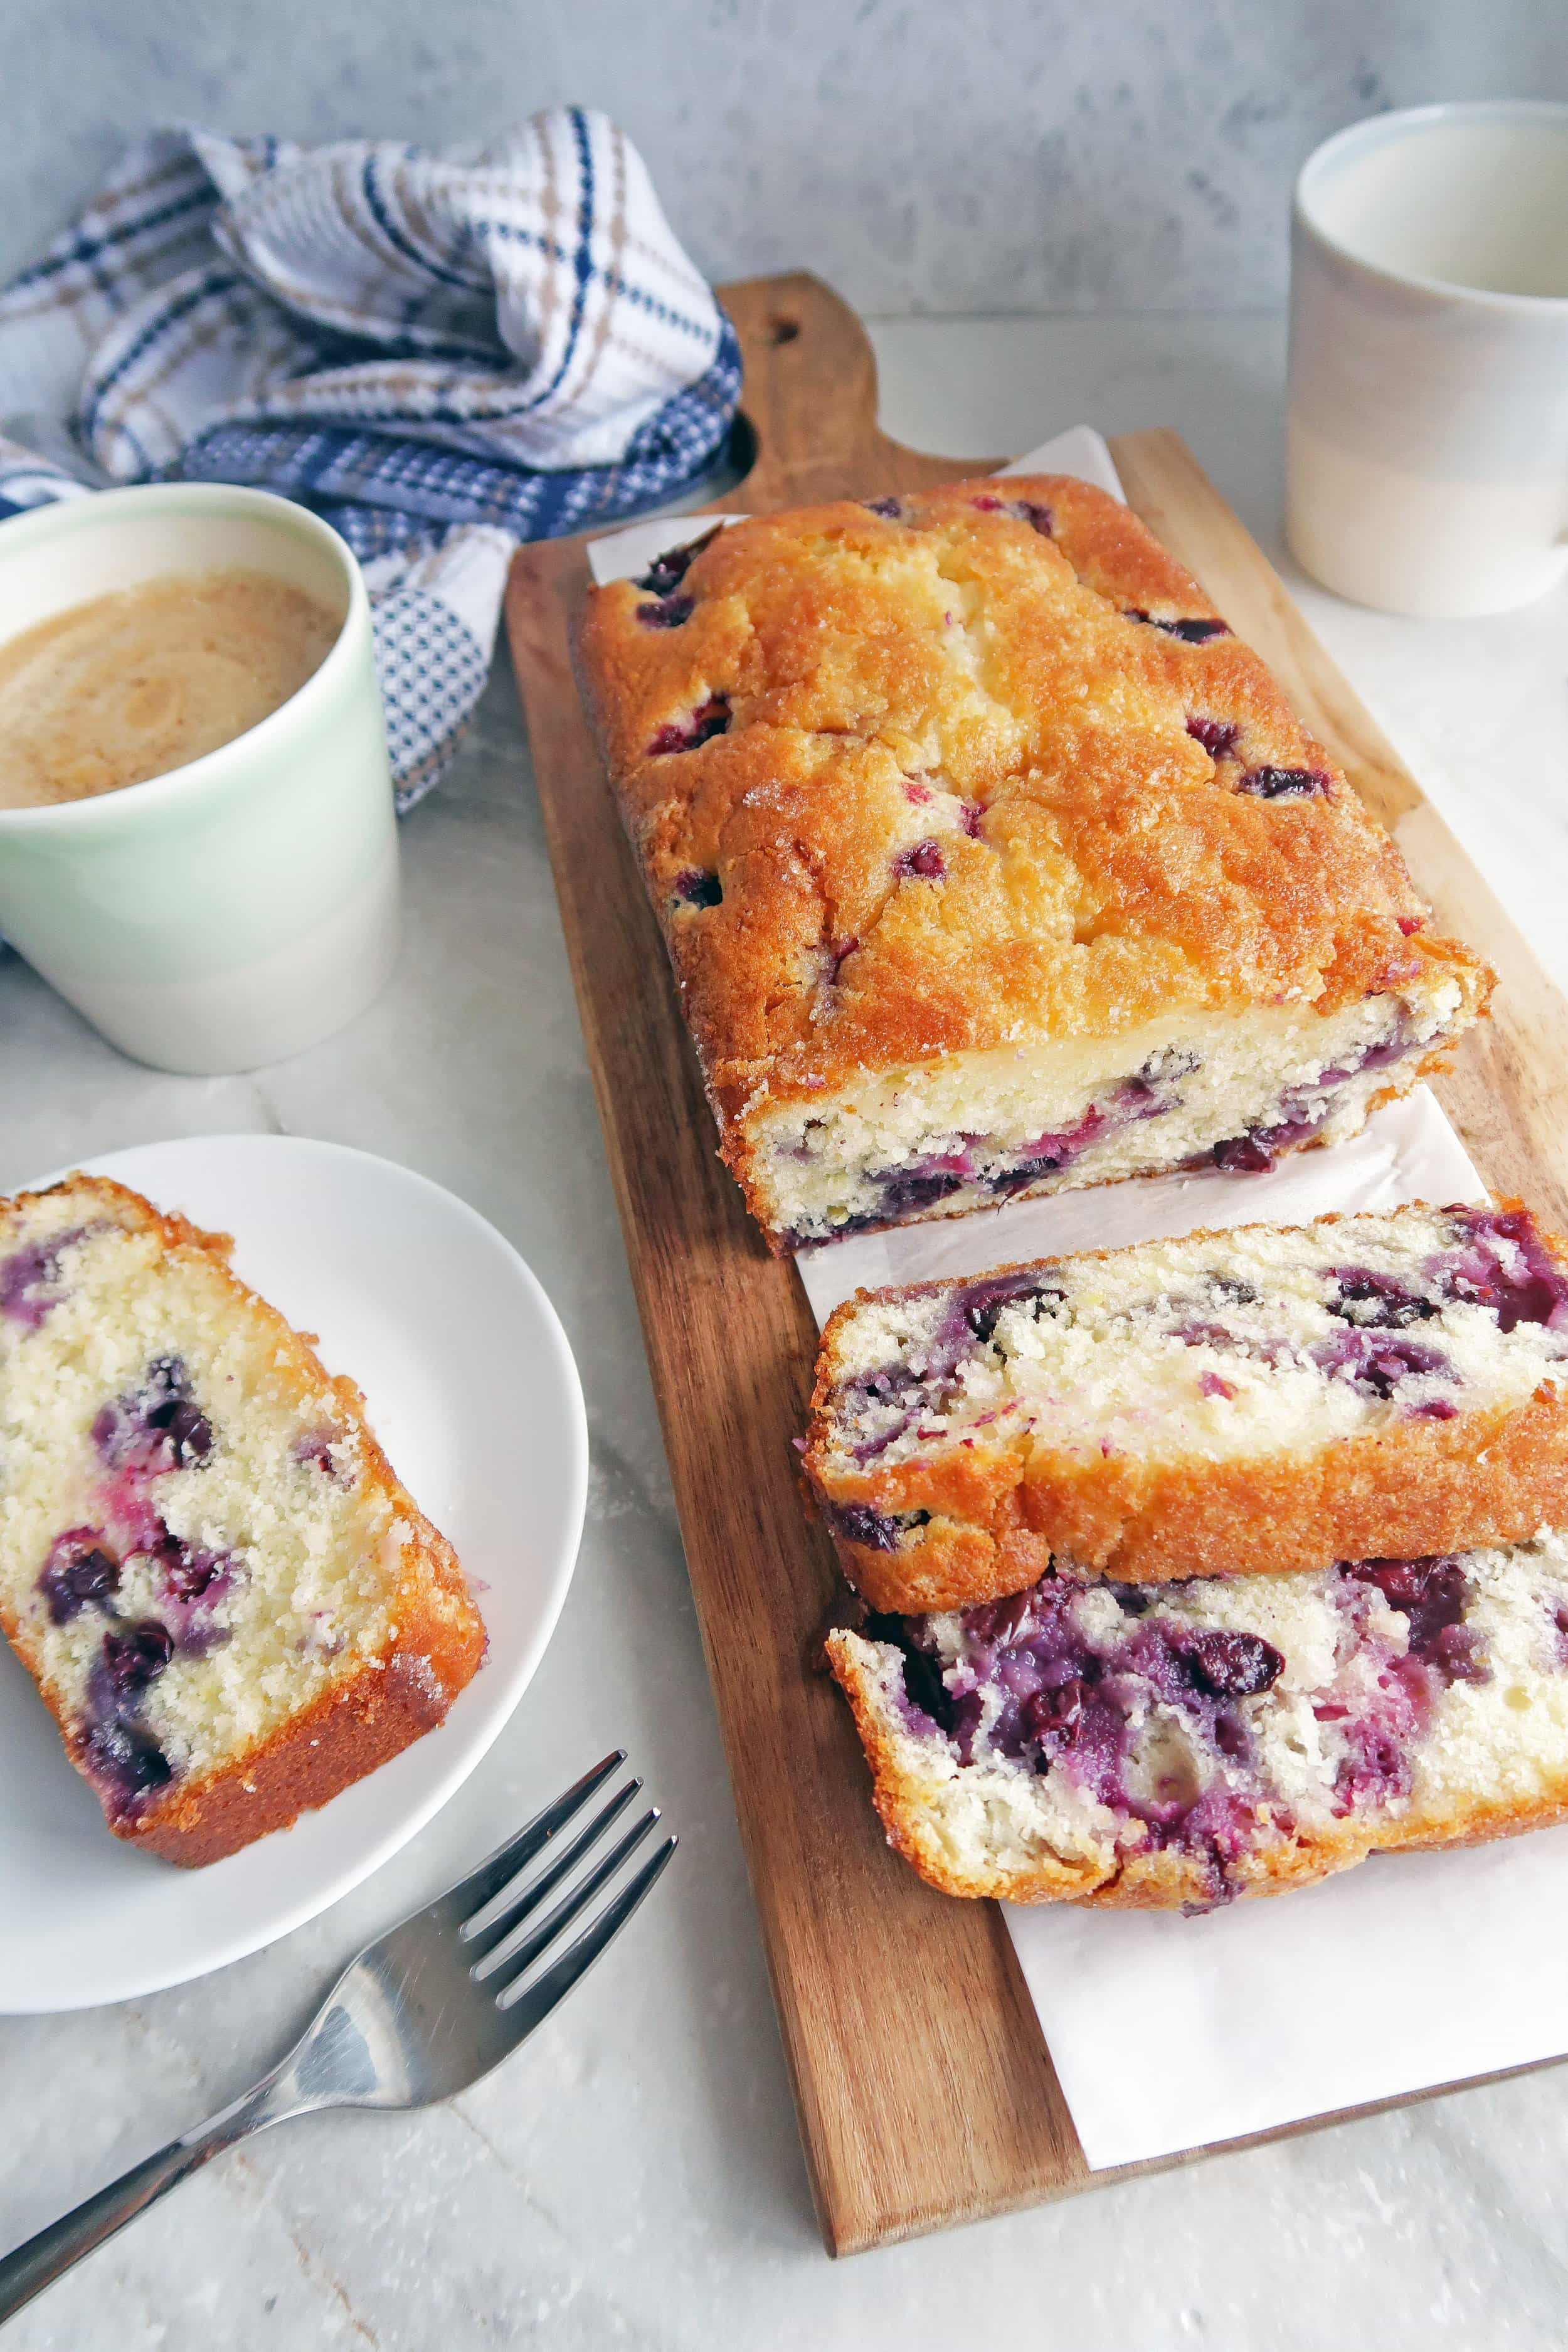 A slice of fluffy Classic Lemon Blueberry Loaf Cake on a white plate; the remaining loaf cake on a long wooden board.